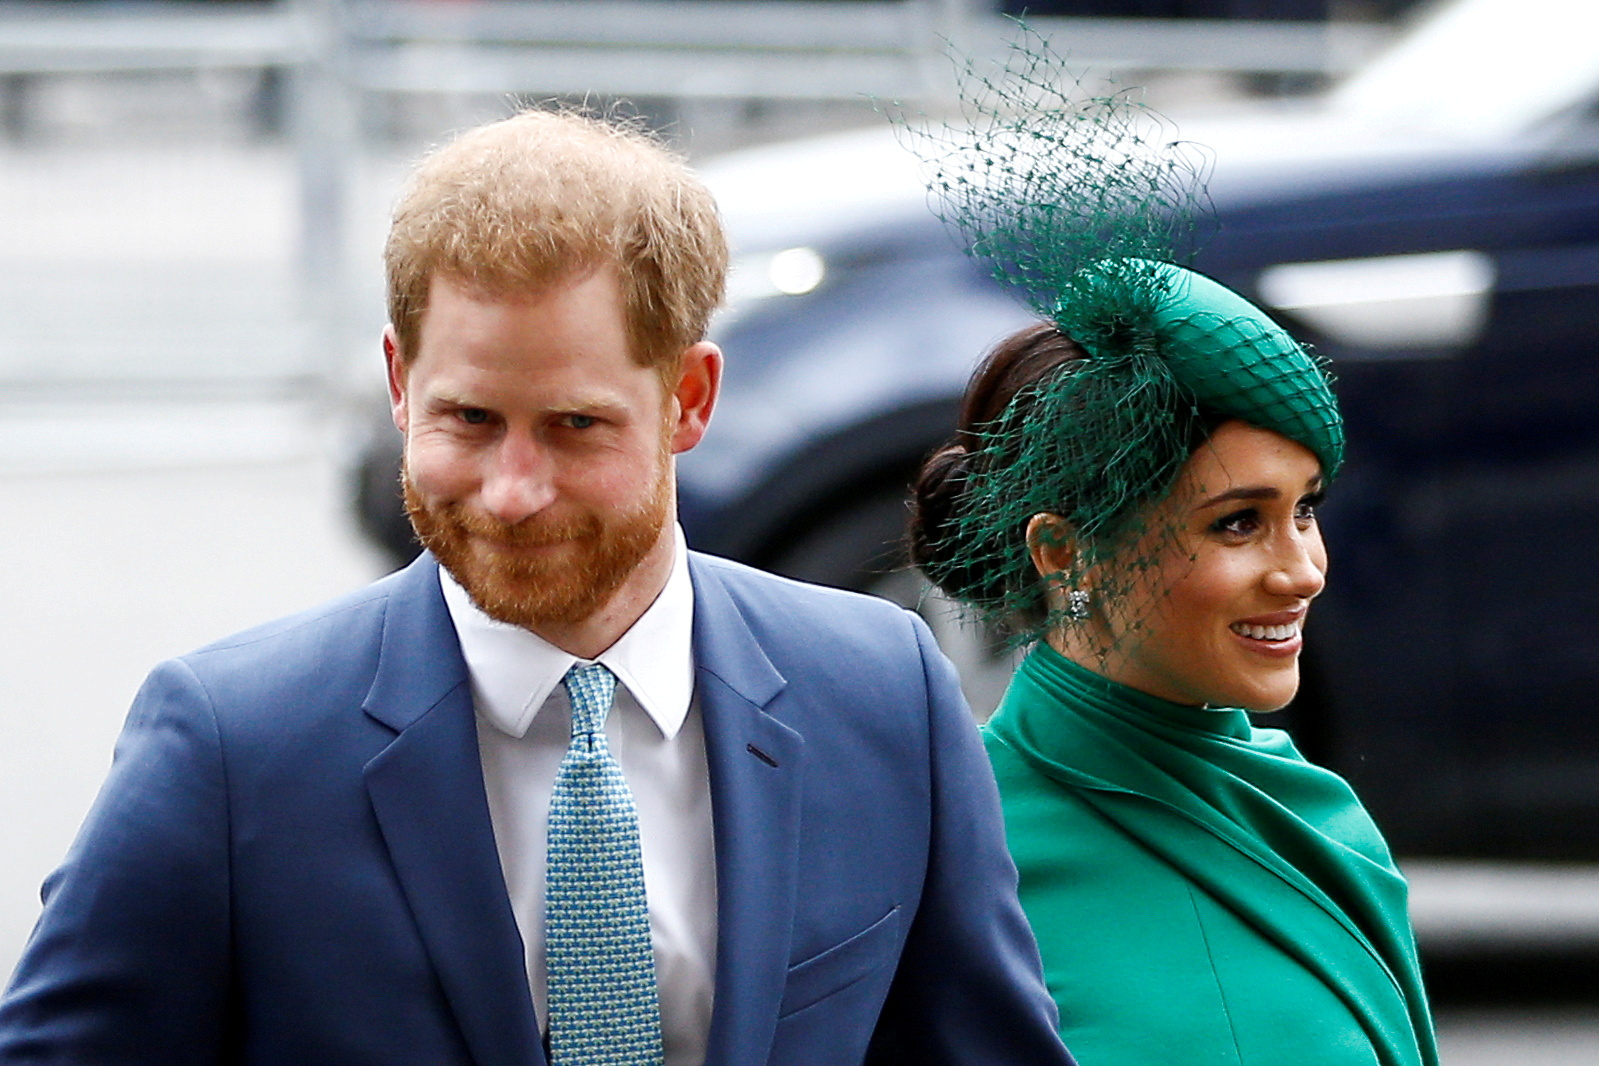 Britain's Prince Harry and Meghan, Duchess of Sussex, arrive for the annual Commonwealth Service at Westminster Abbey in London, Britain March 9, 2020. REUTERS/Henry Nicholls/File Photo